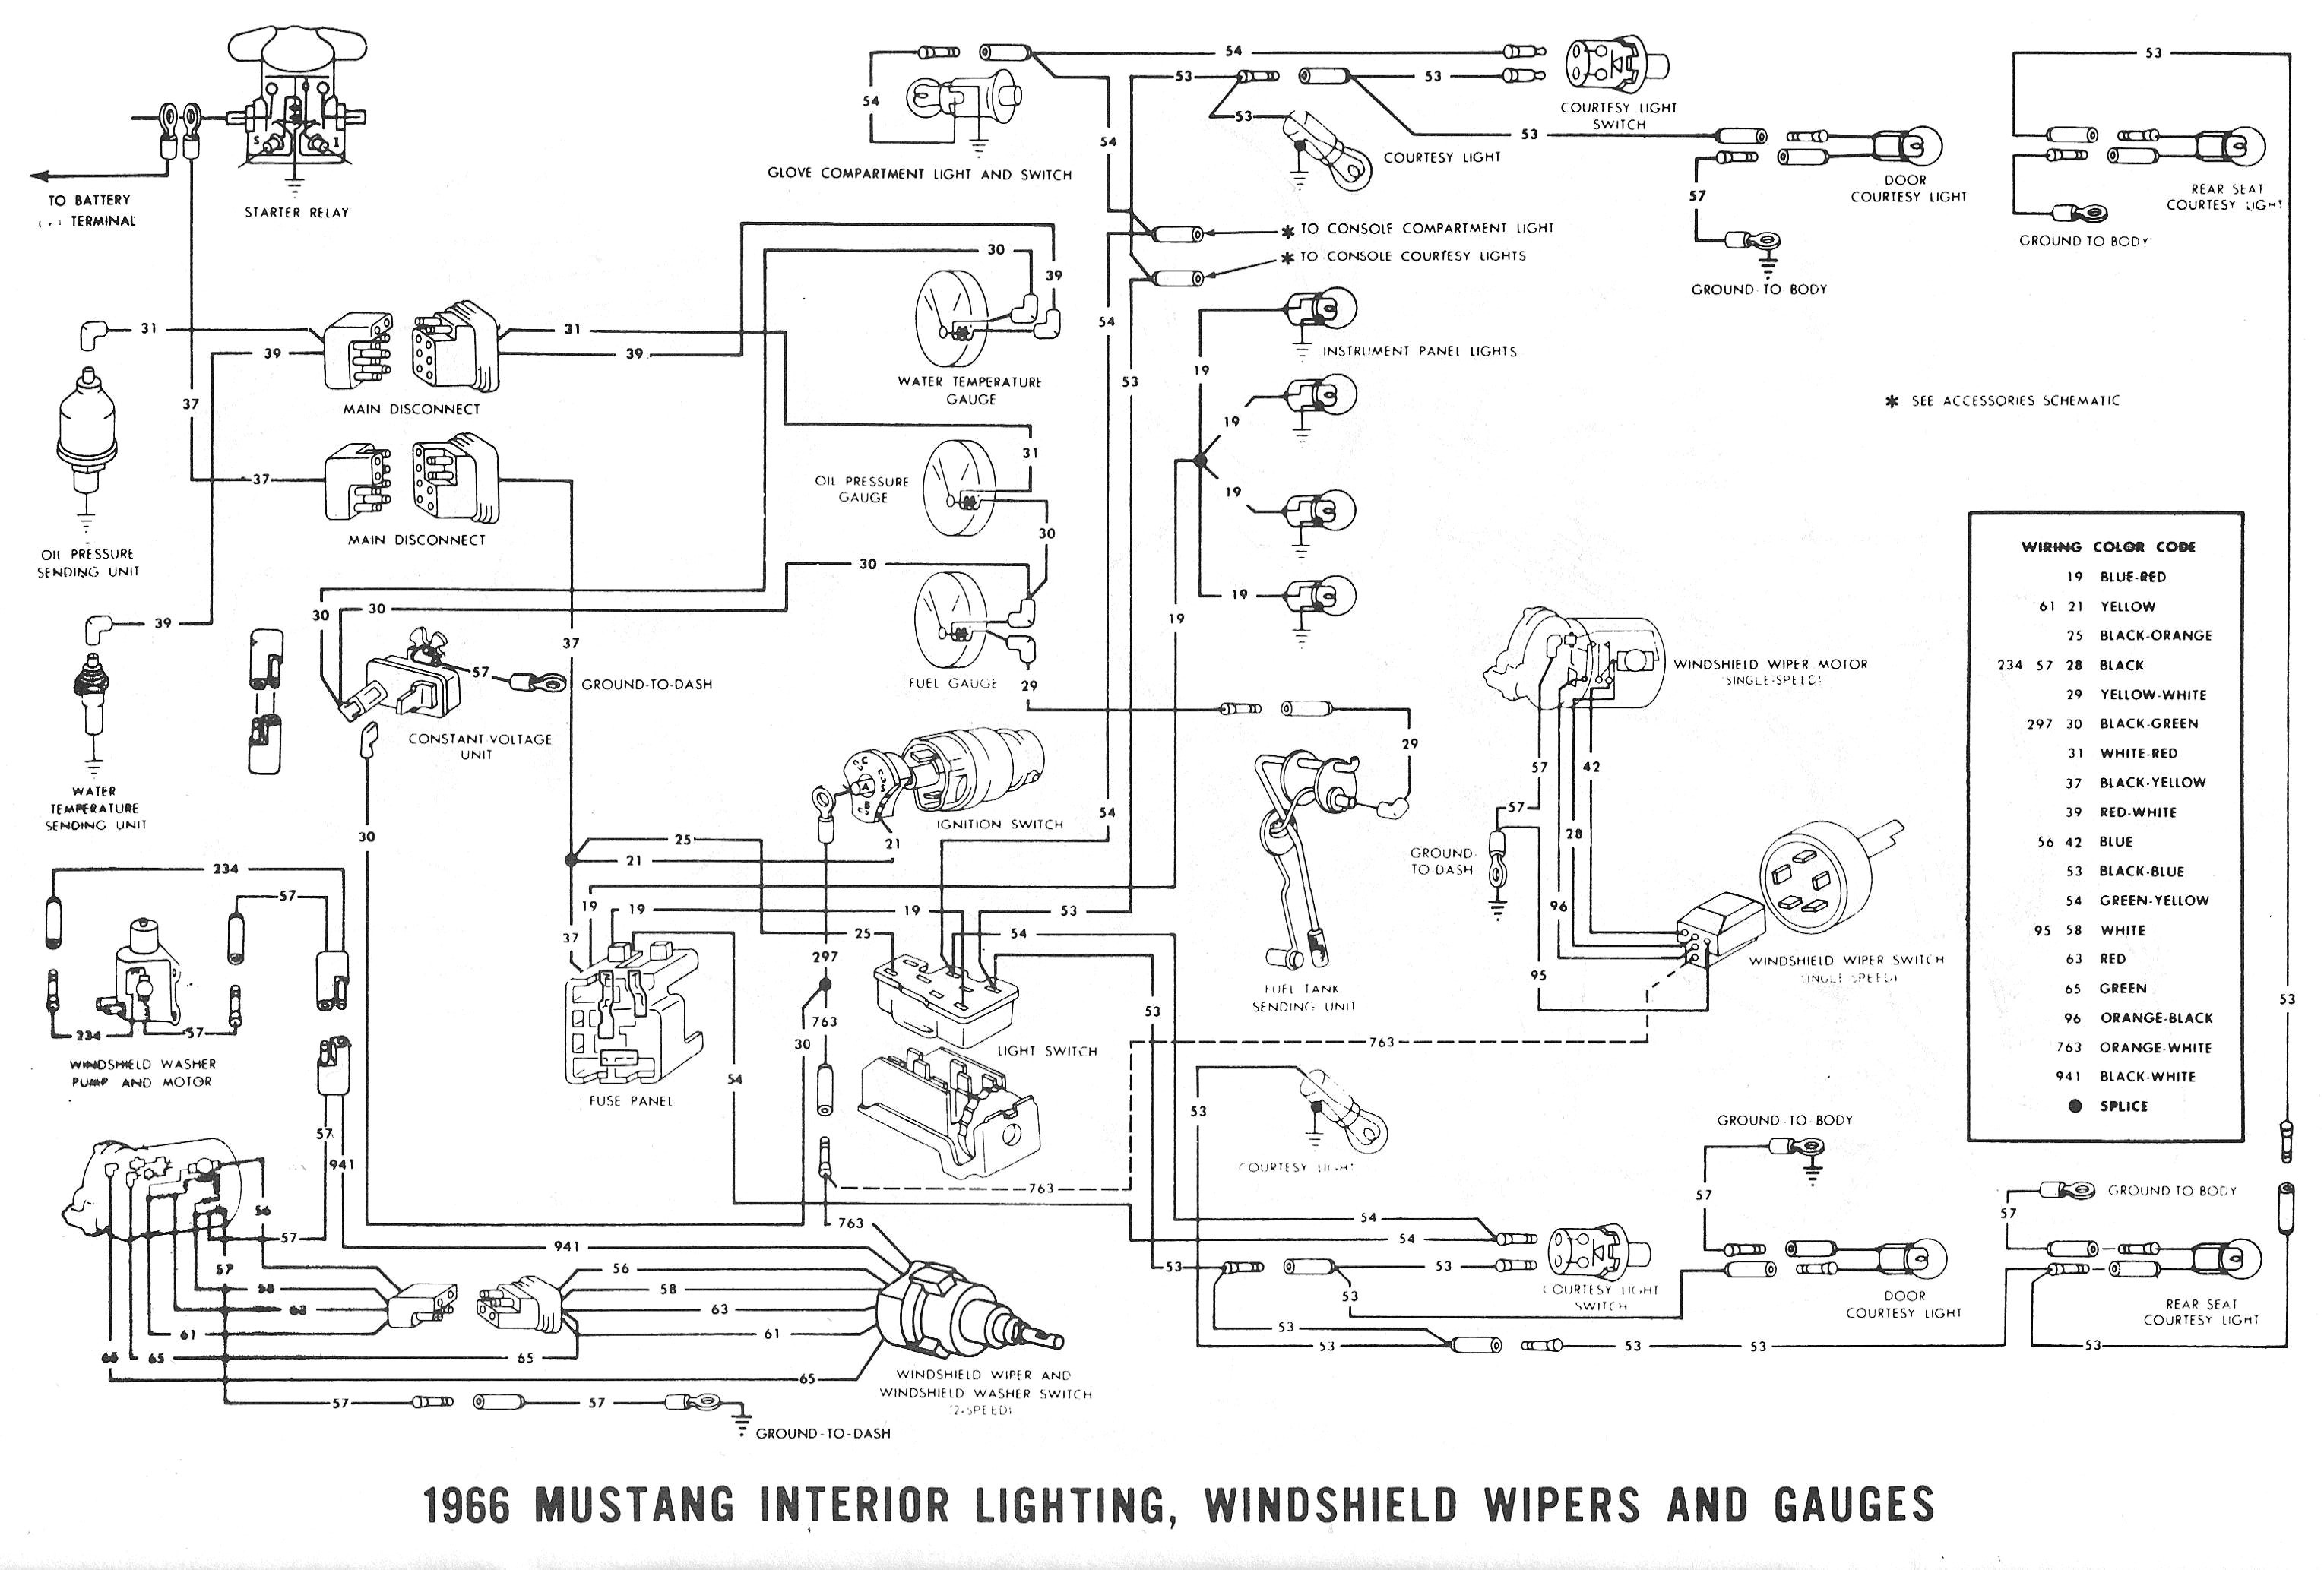 93 Mustang 5 0 Wiring Harness Library Engine Diagram 86 Wire Center U2022 Rh Mladane Pw 1993